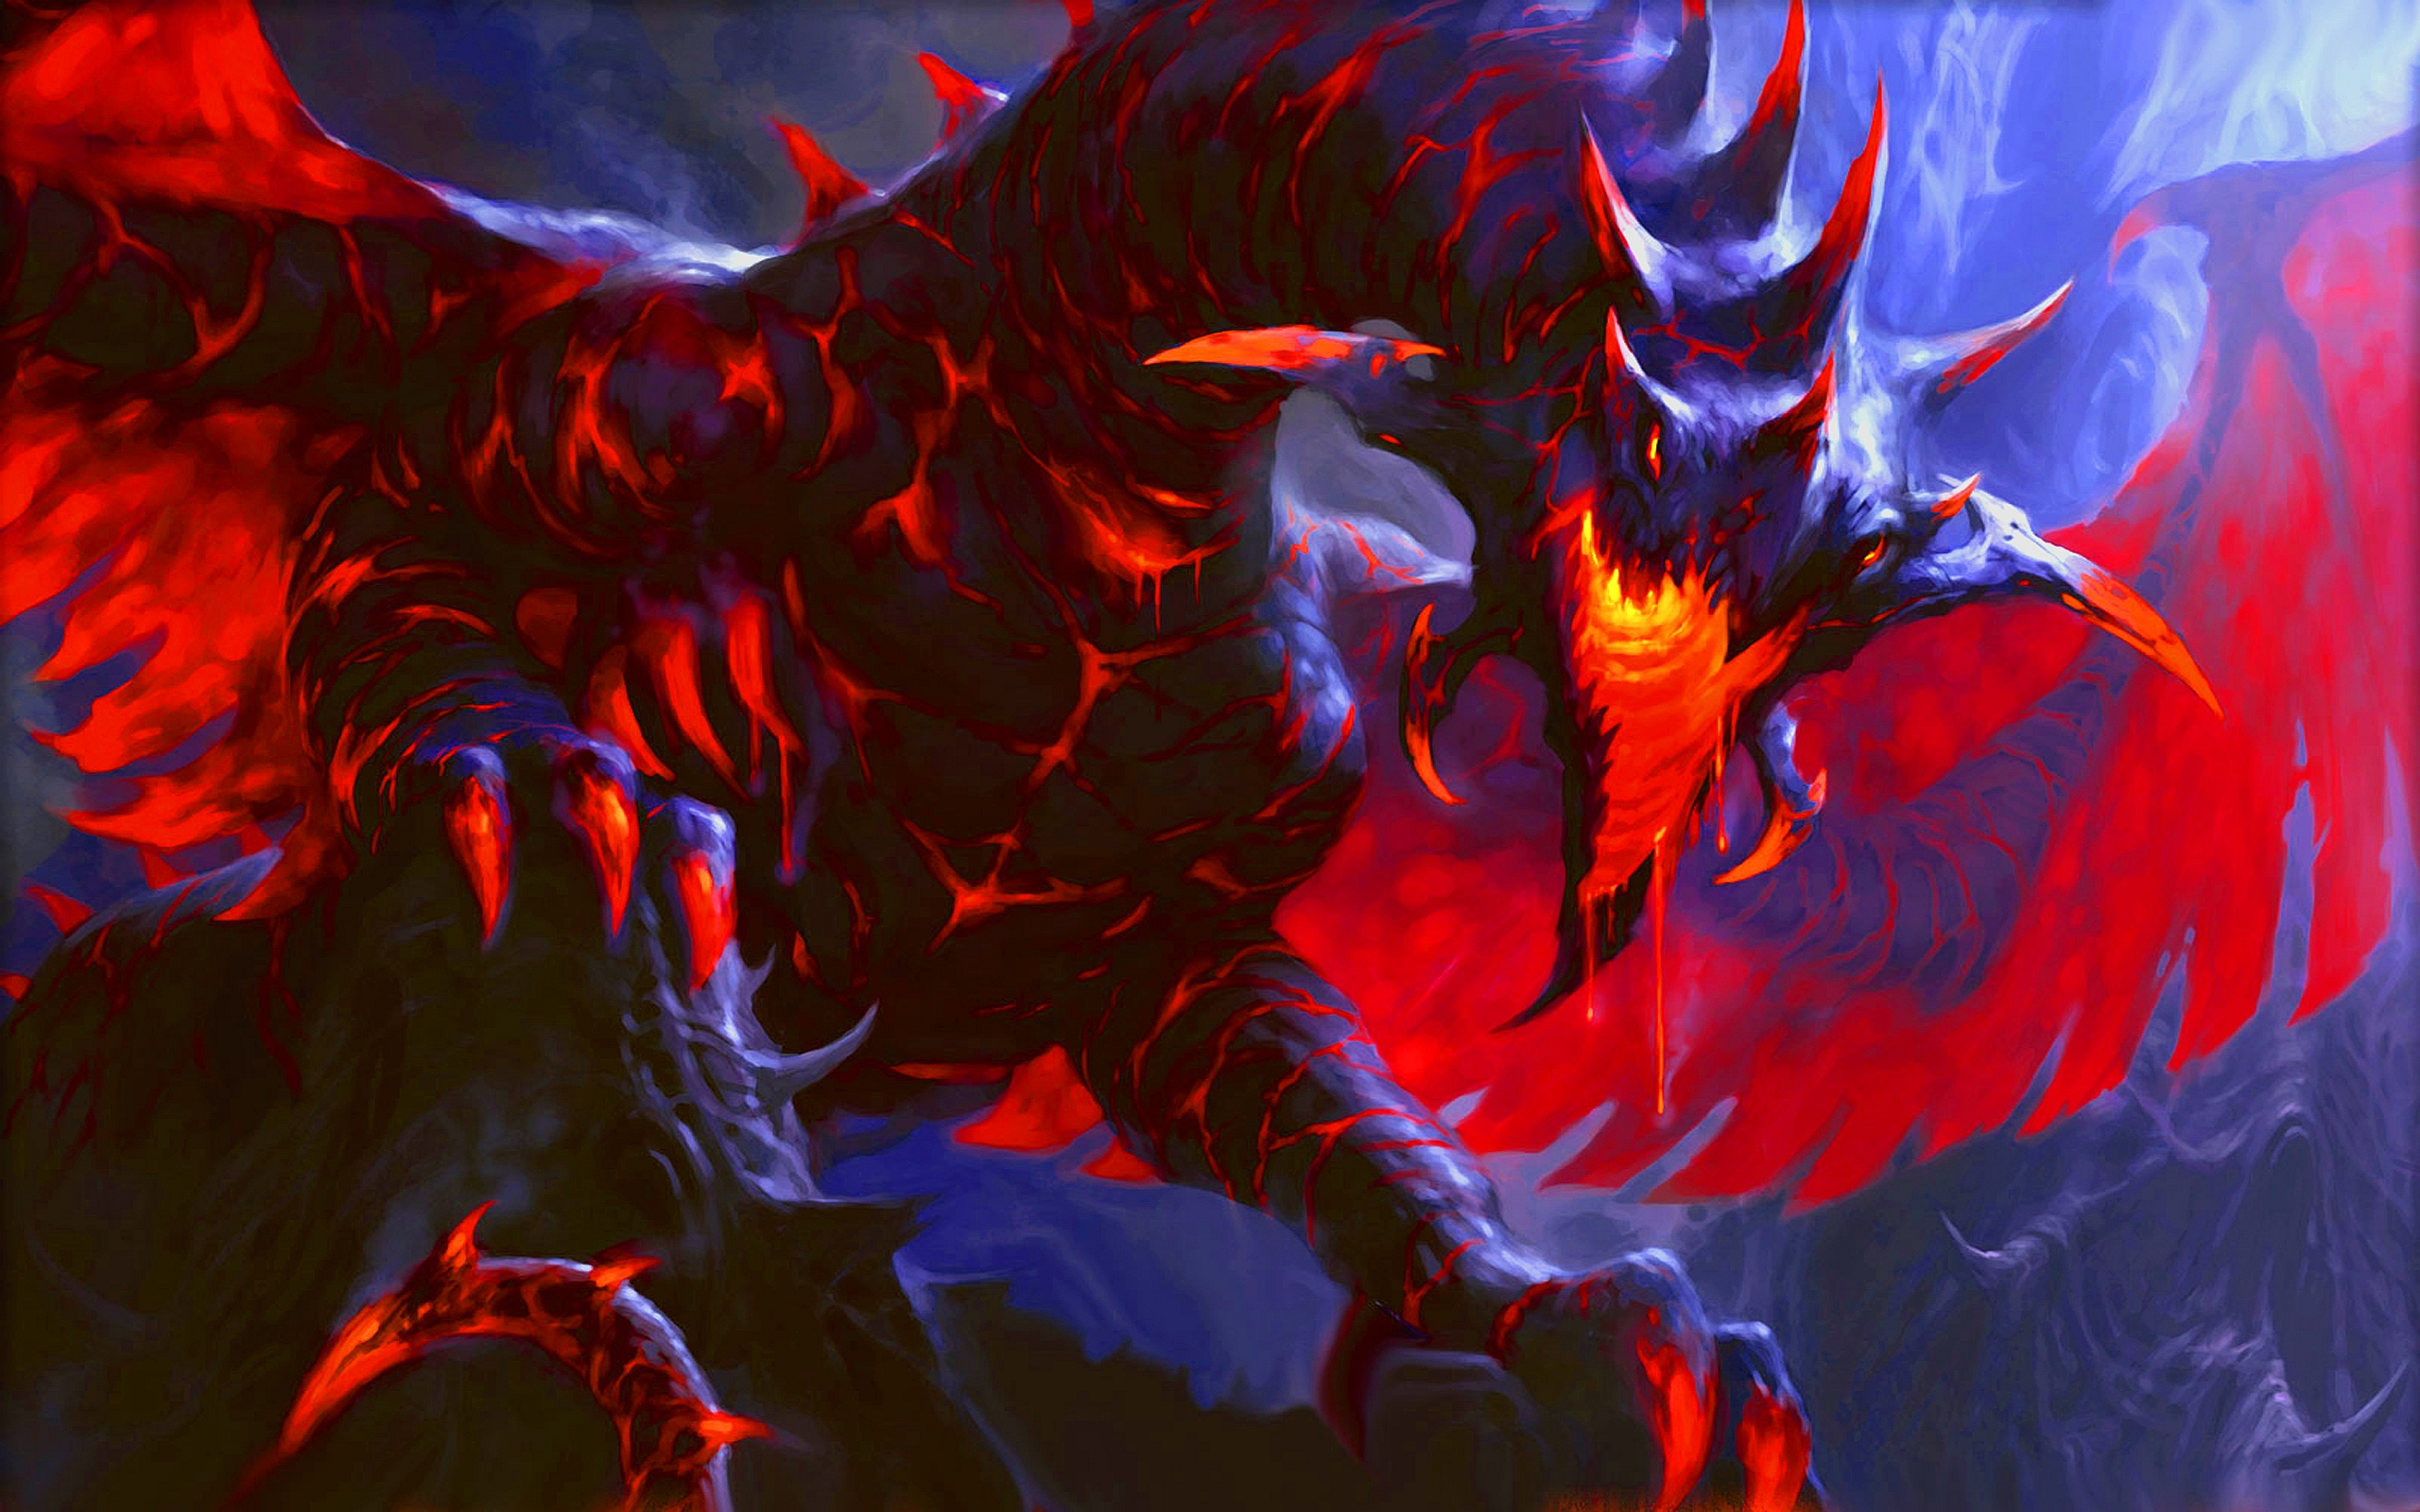 Red Dragon Wallpaper Hd 1080p image gallery 2560x1600